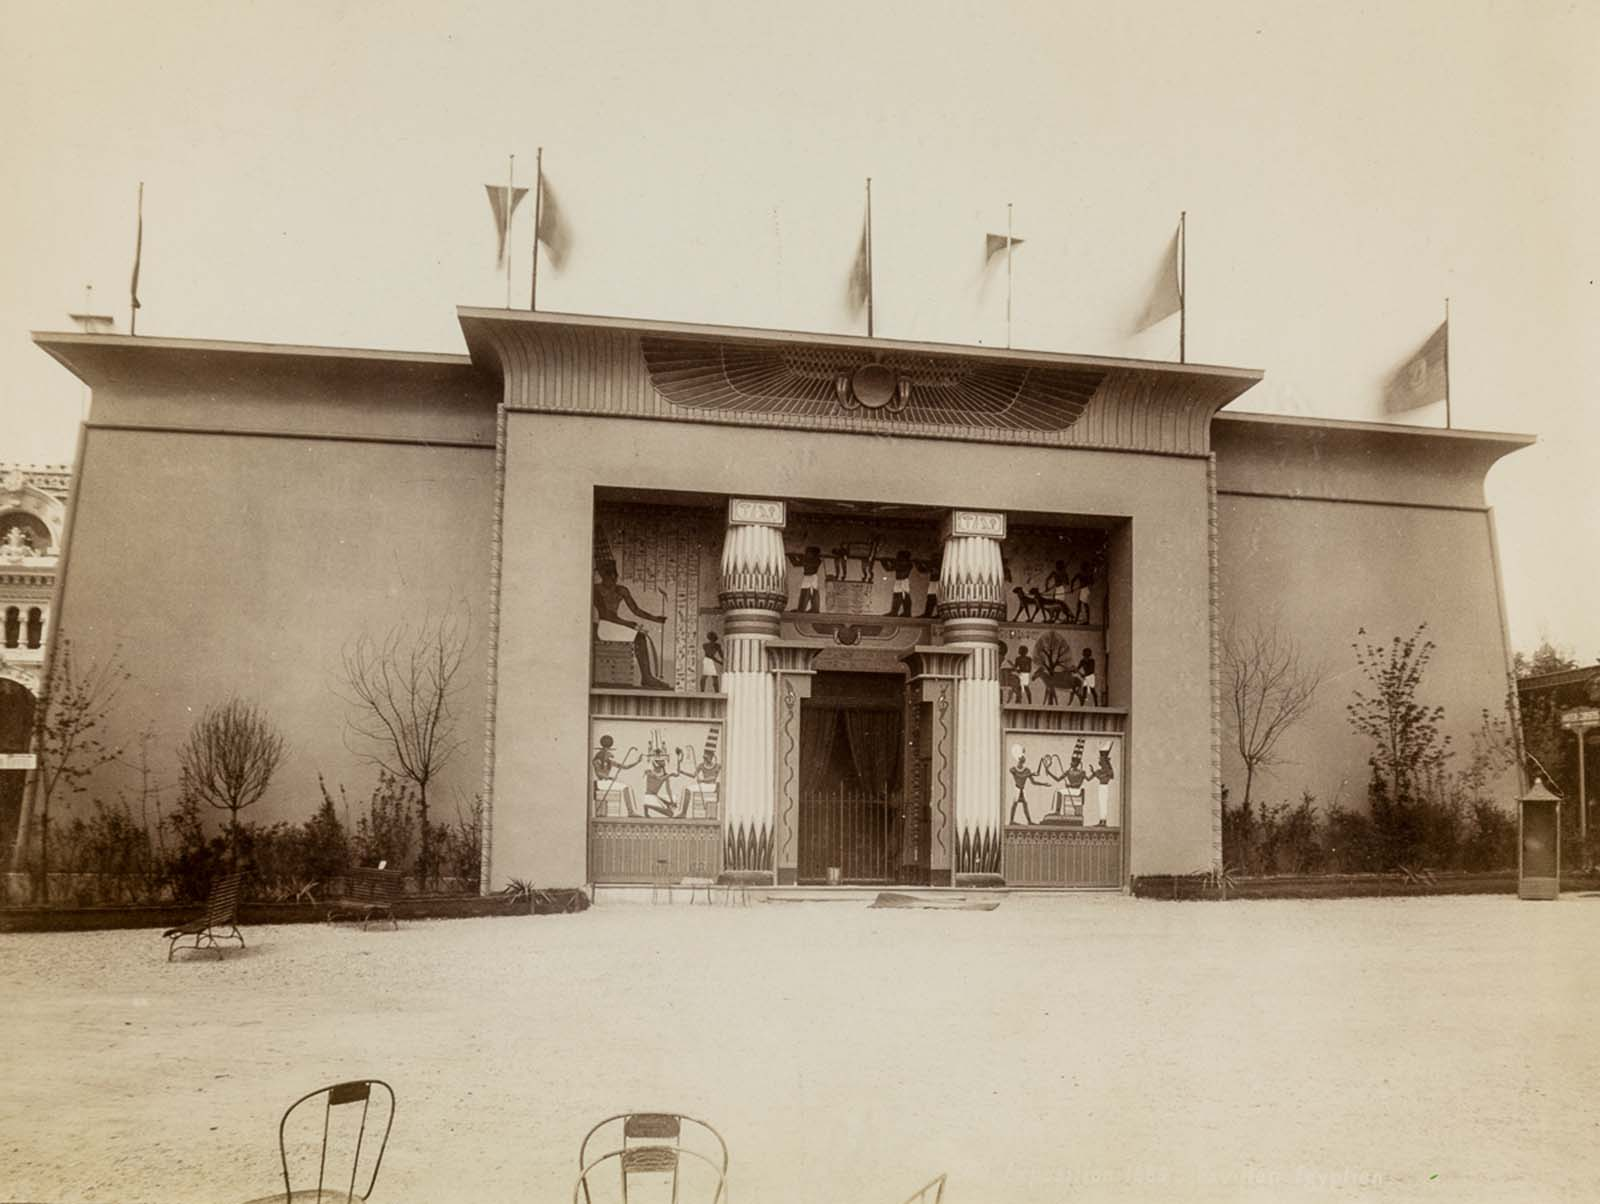 The exterior of the Egyptian pavilion.